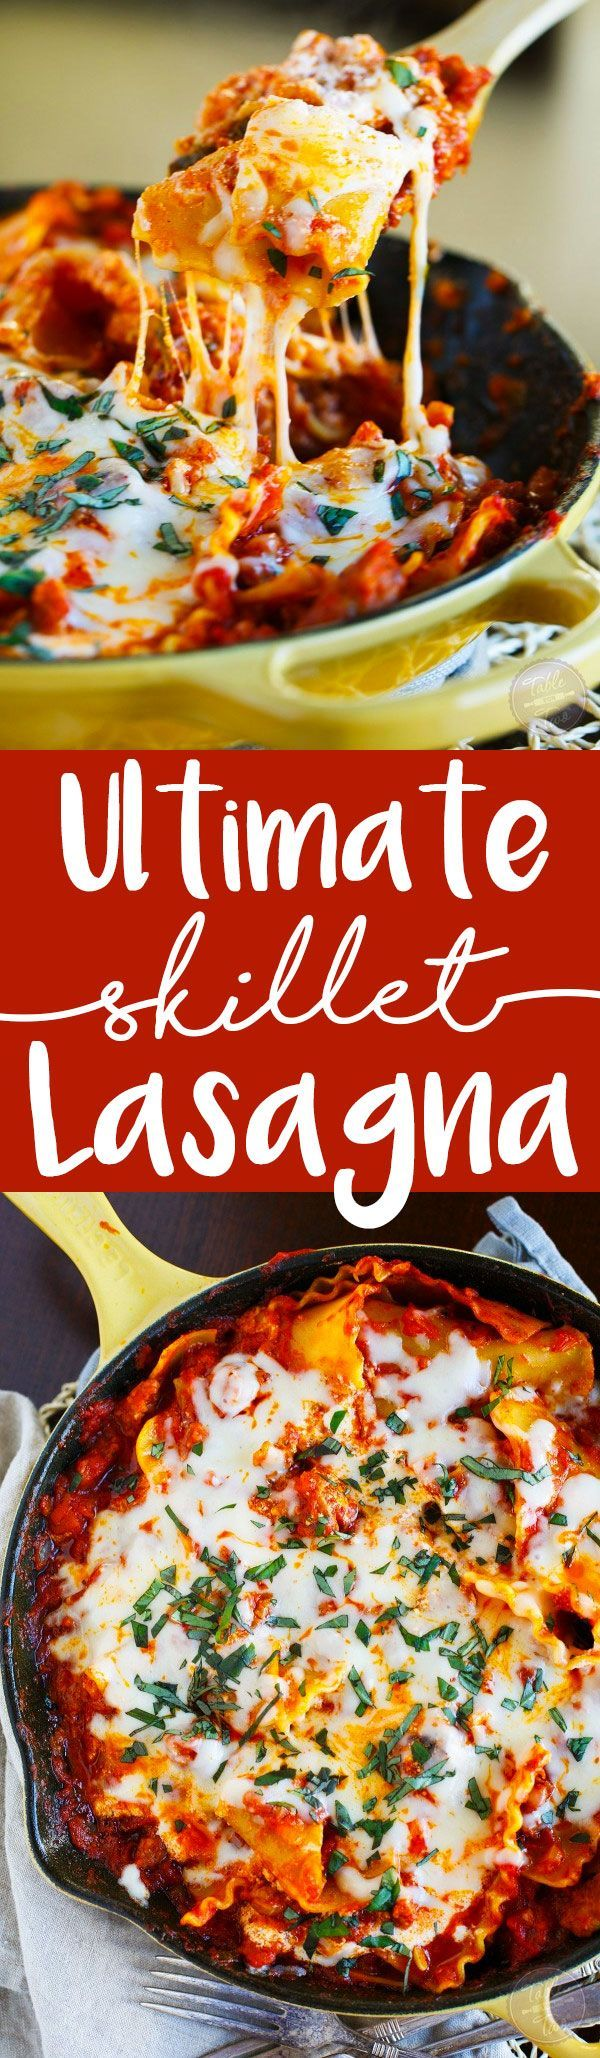 Ditch that casserole dish and grab your skillet! This ultimate skillet lasagna is going to change the way you make lasagna forever!